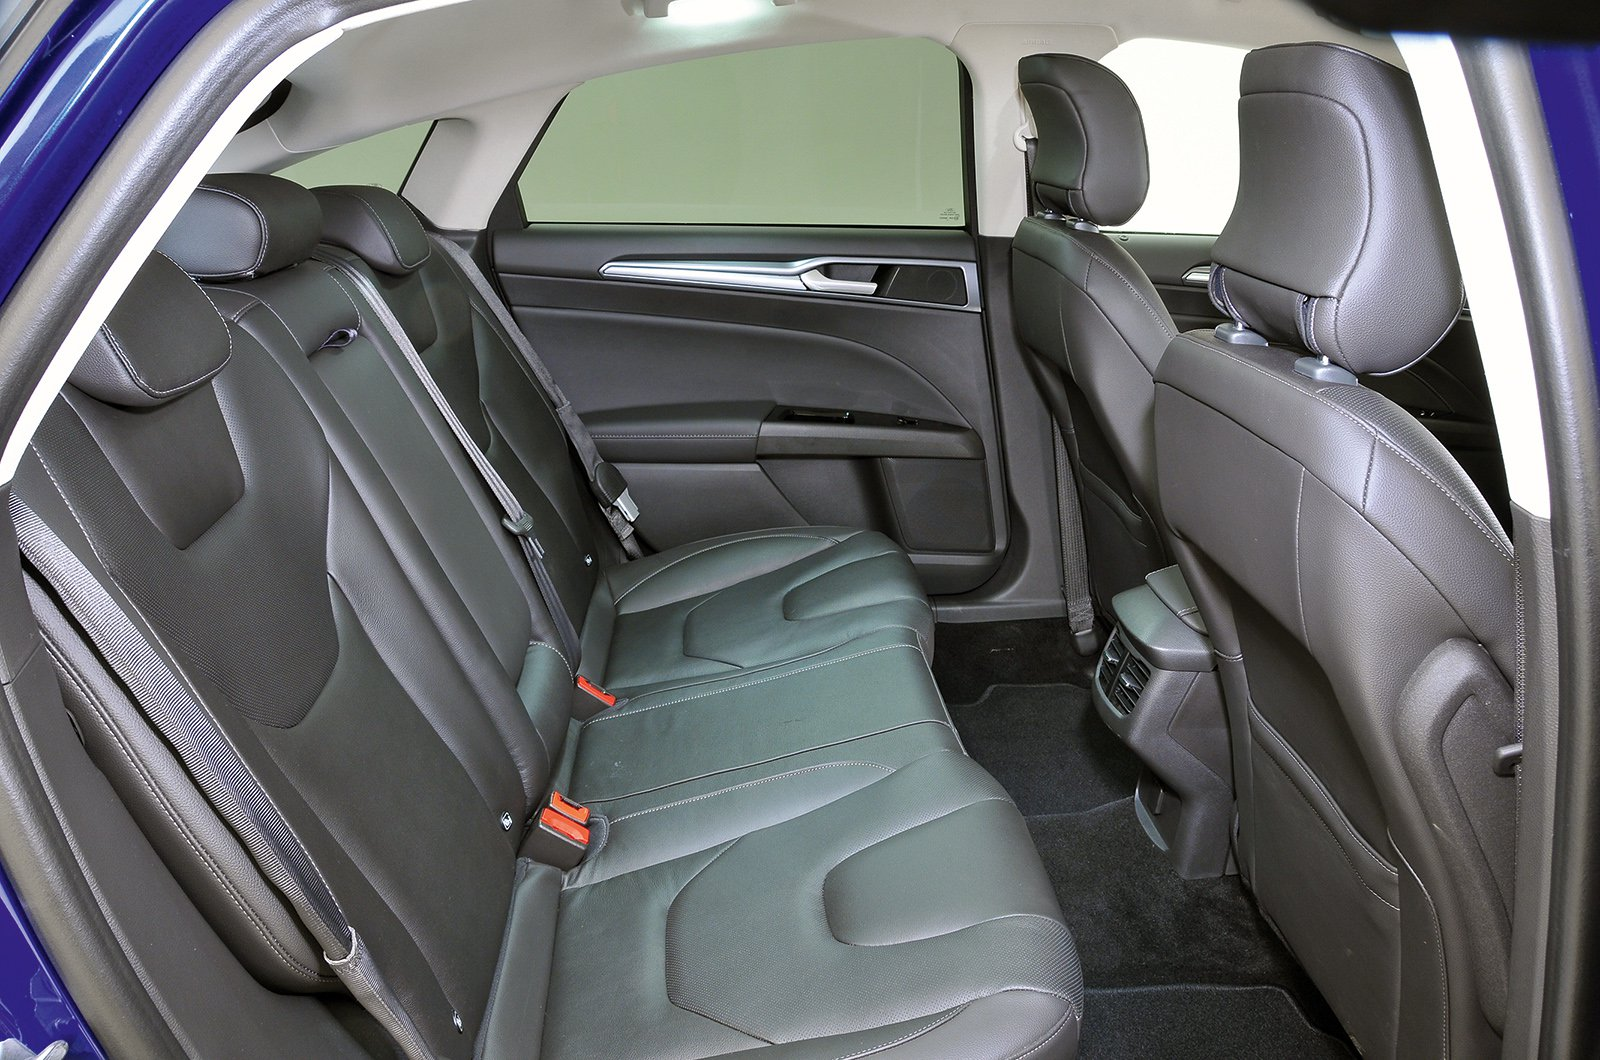 Ford Mondeo hatch rear seats